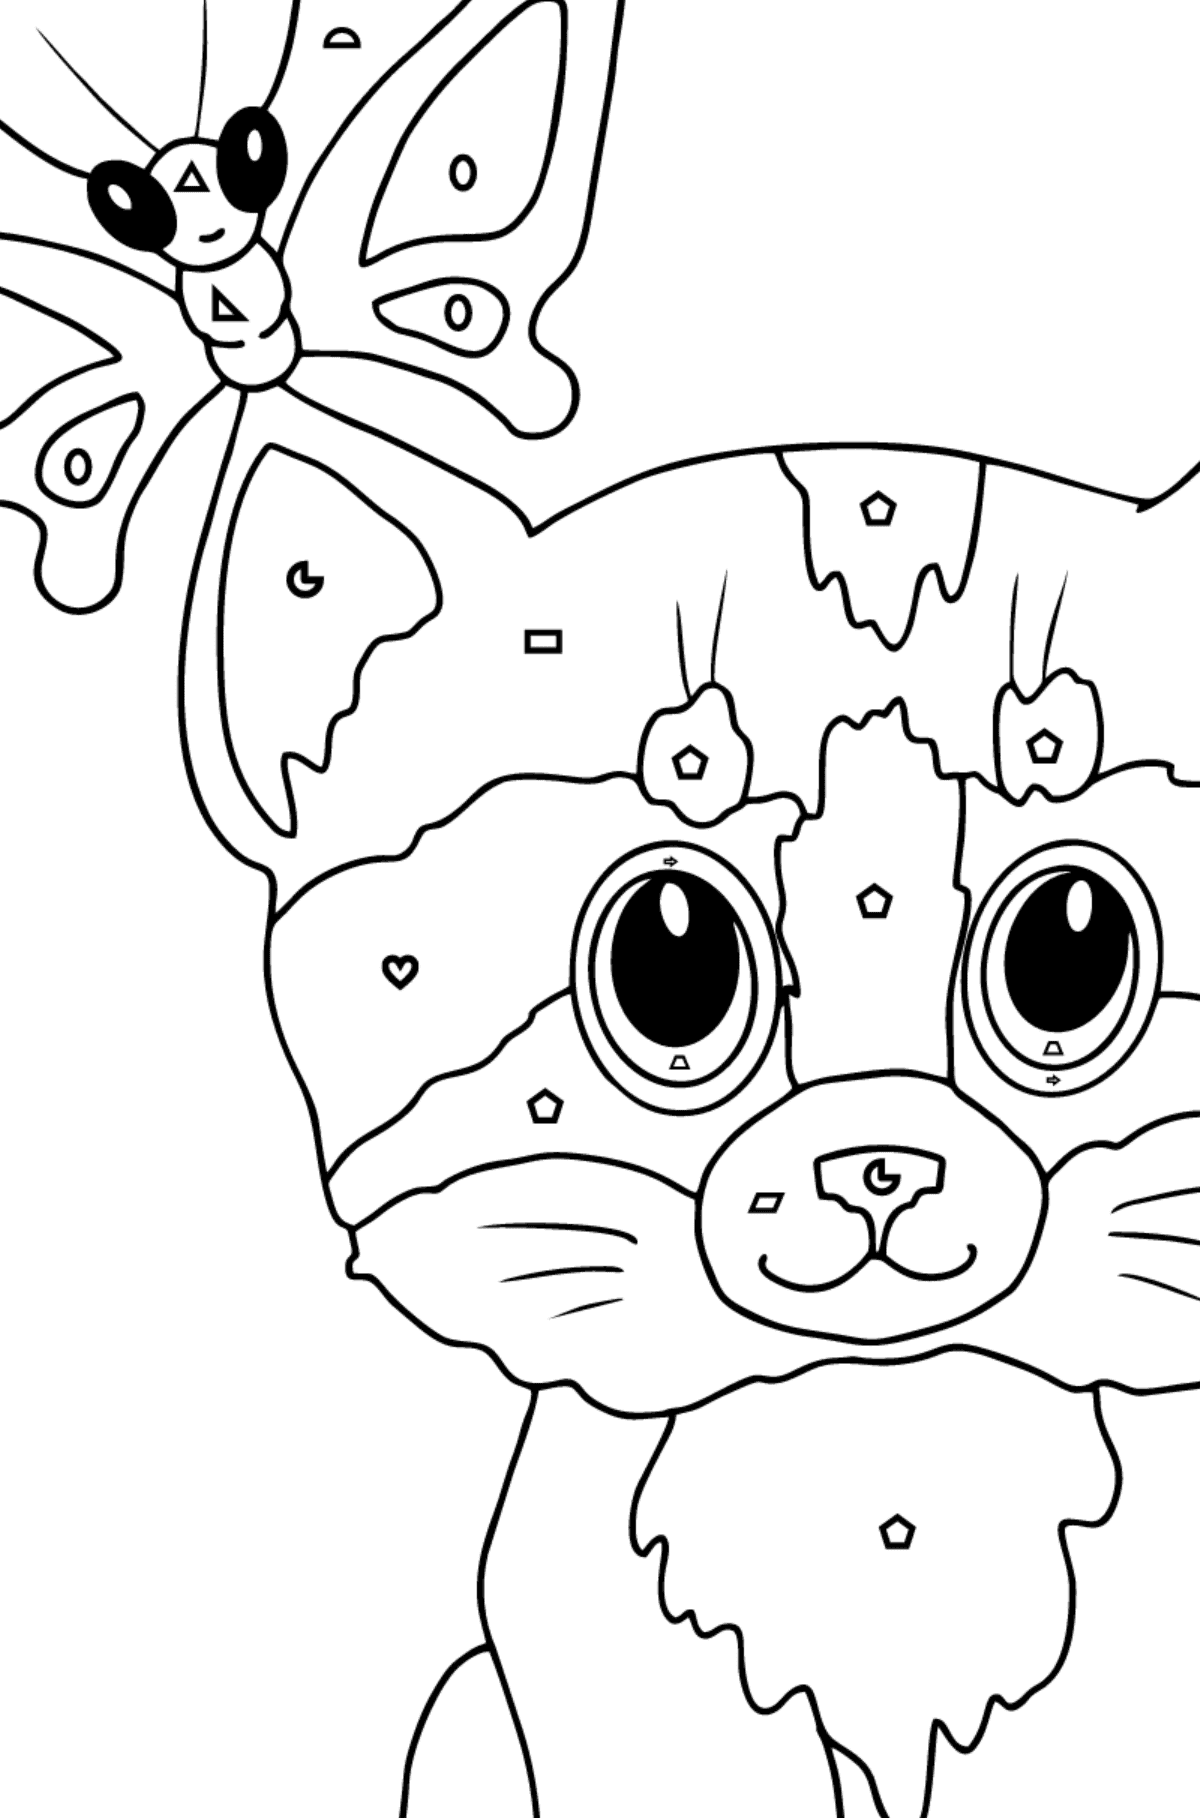 Coloring Page - A Cat with a Butterfly on Its Ear - Coloring by Geometric Shapes for Children